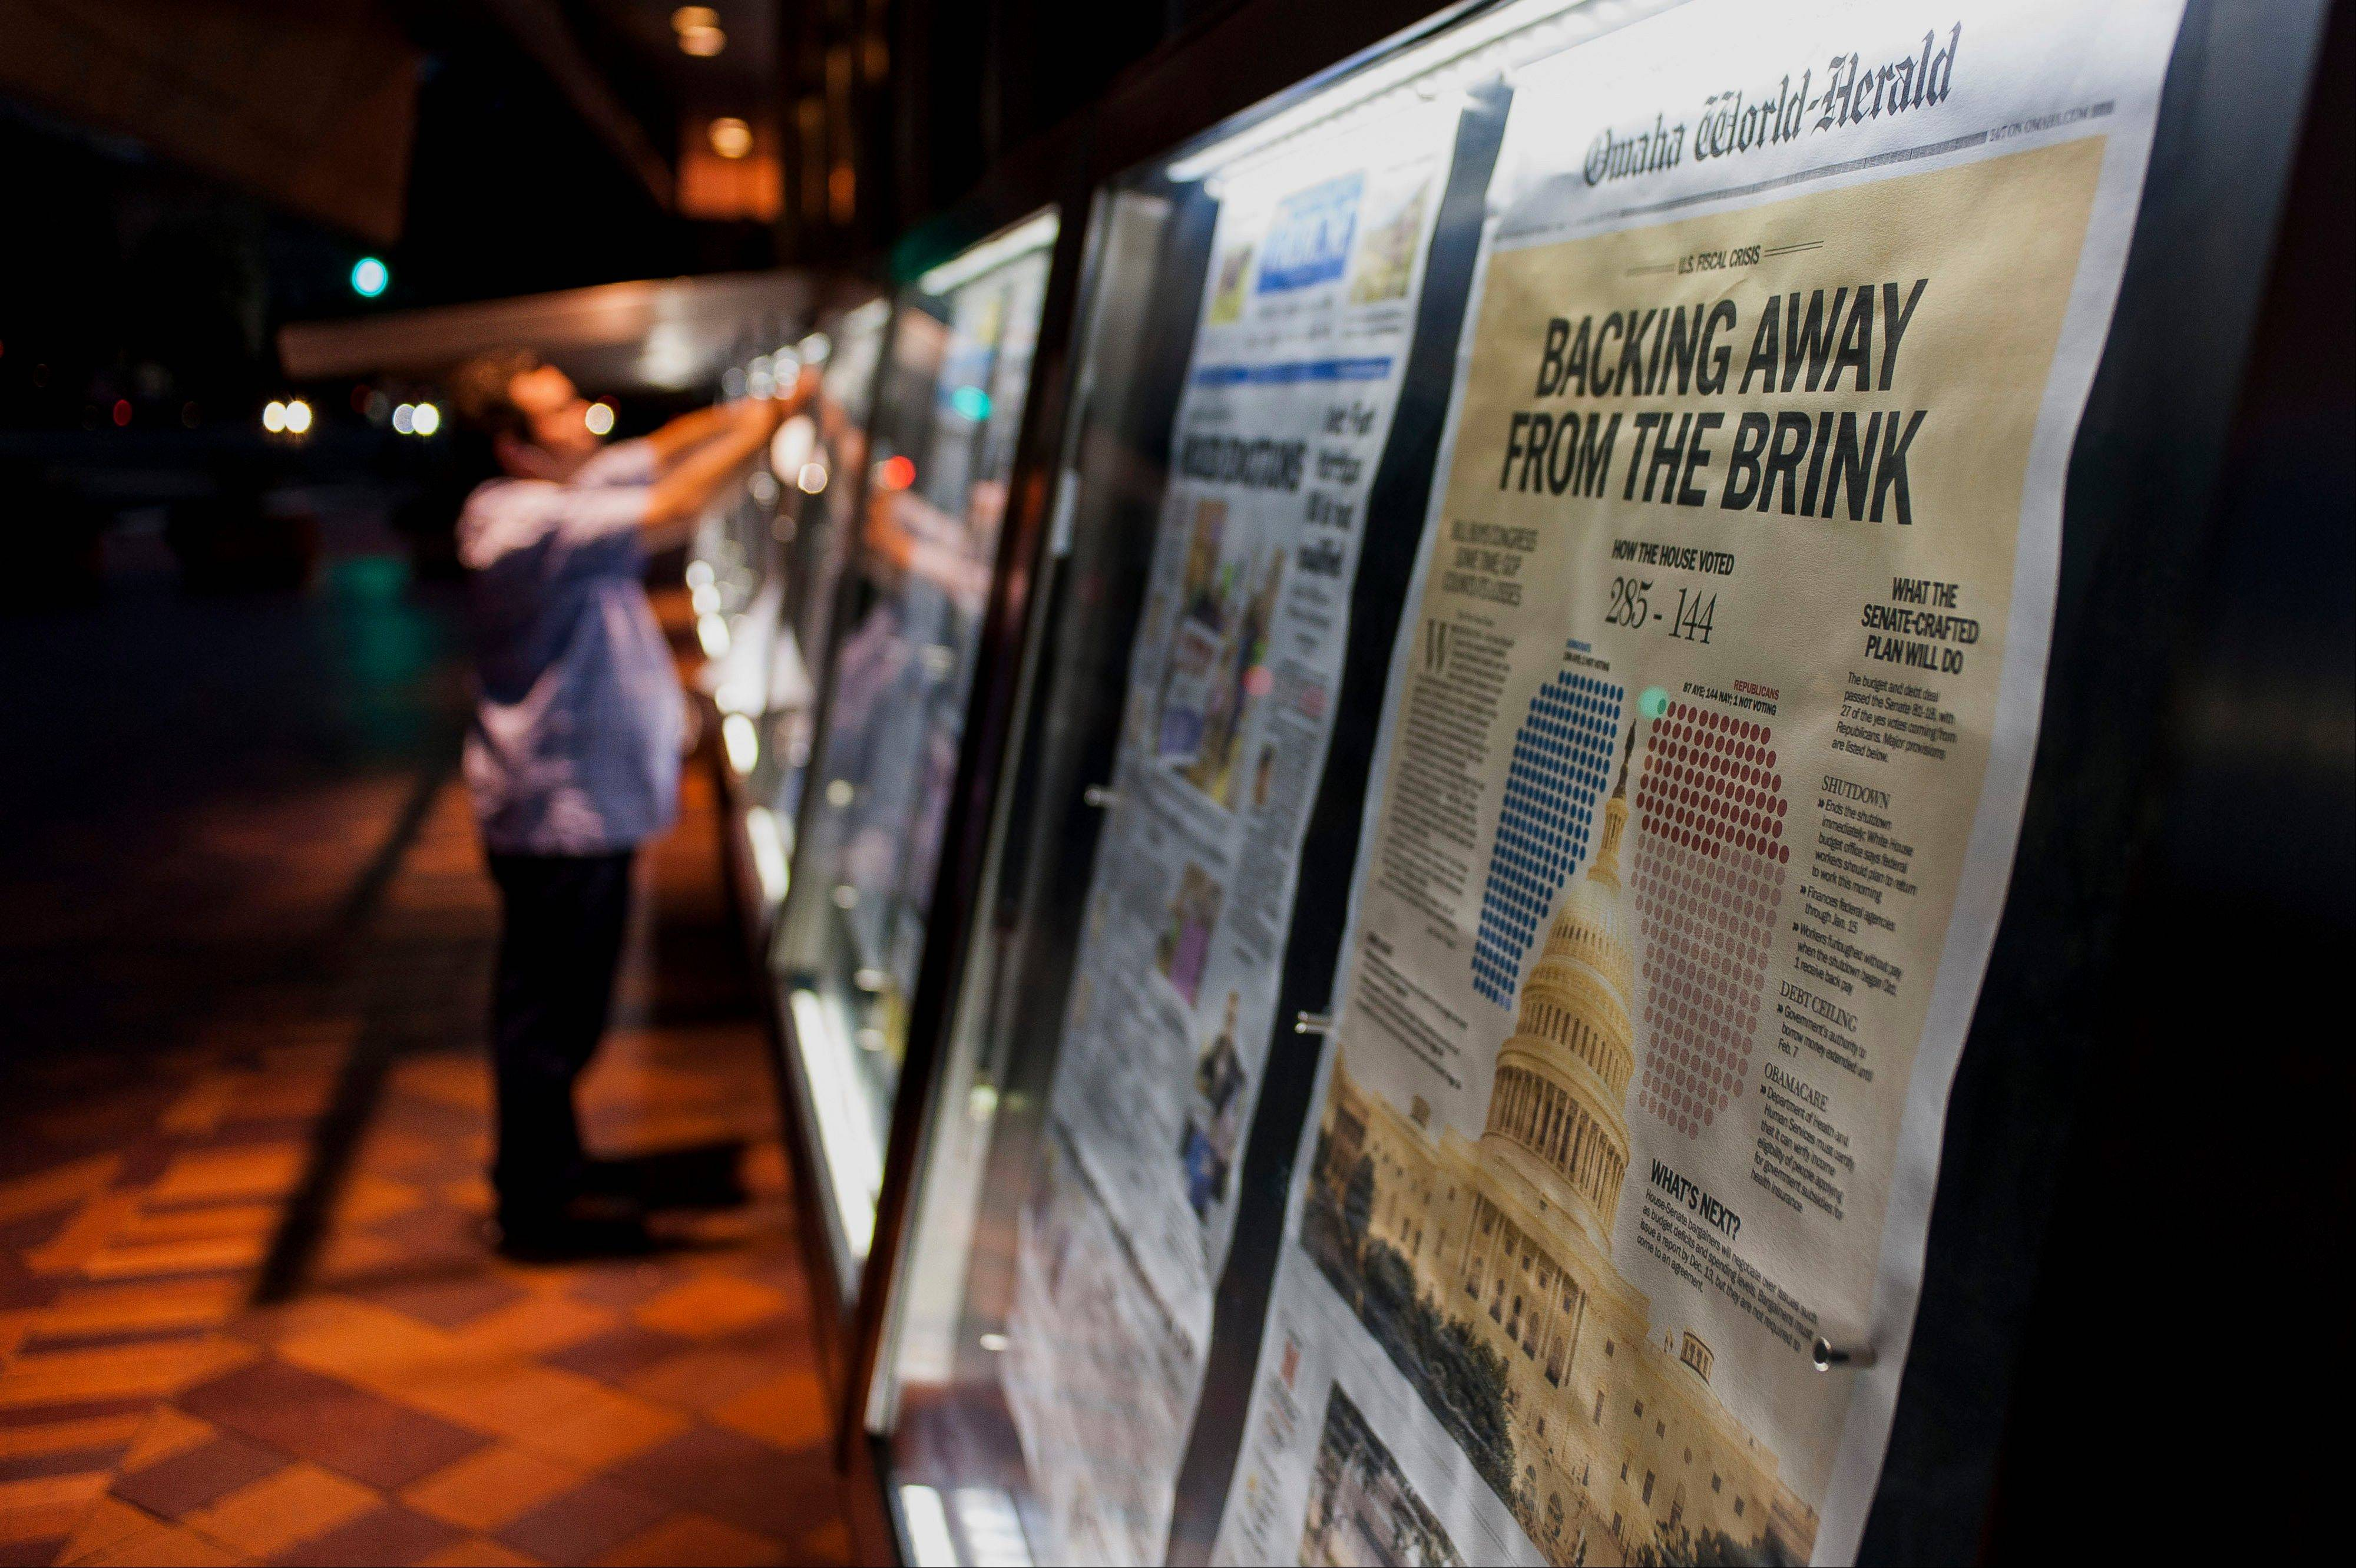 An employee puts front pages in the displays in front of the Newseum in Washington, D.C., on Thursday. On Wednesday night the Congress sent President Obama a bill to avoid government default on its obligations.